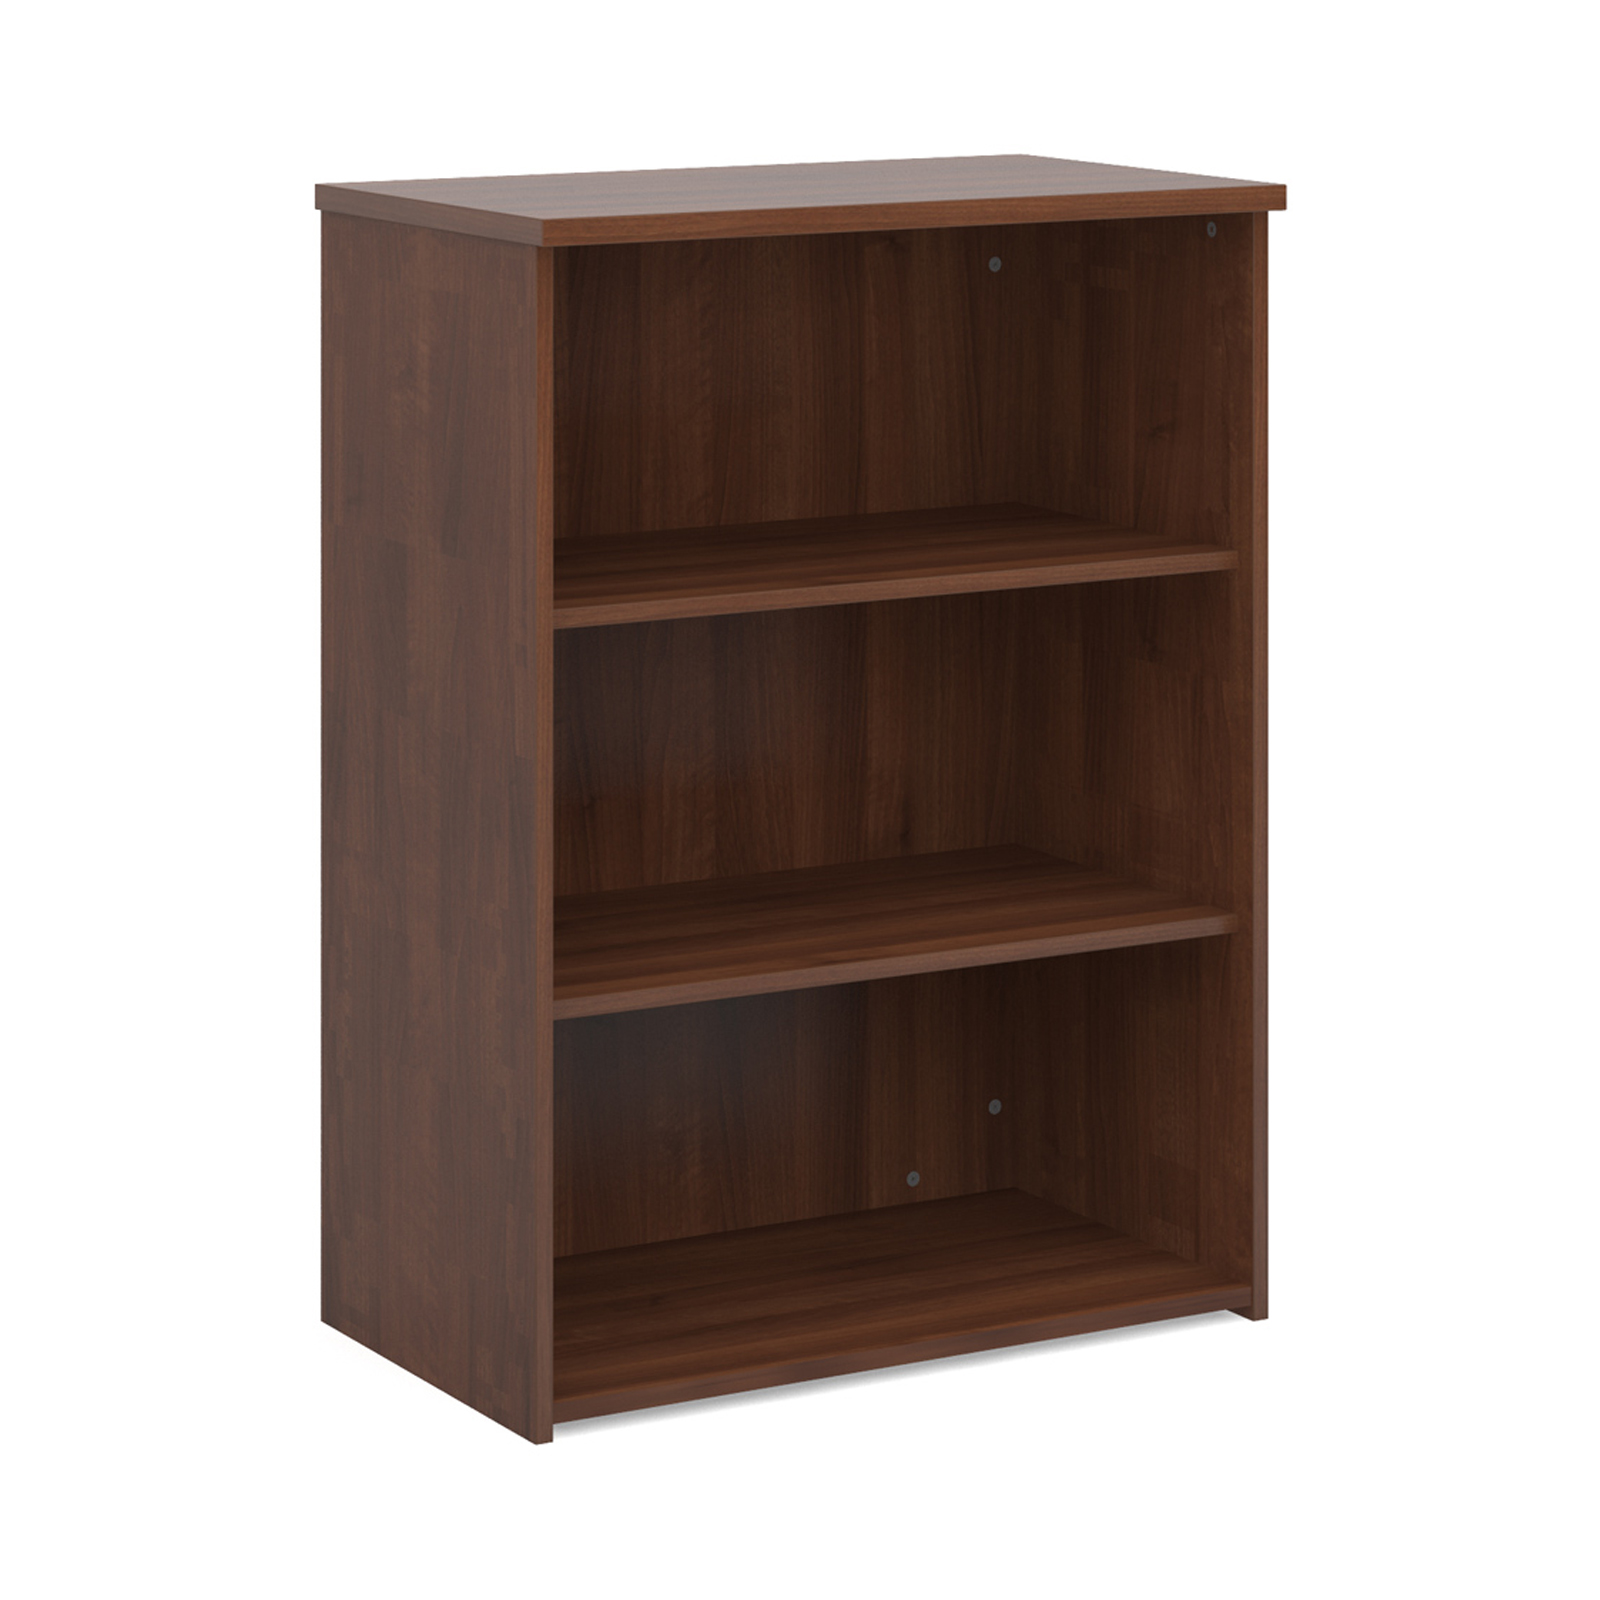 Up To 1200mm High Universal bookcase 1090mm high with 2 shelves - walnut